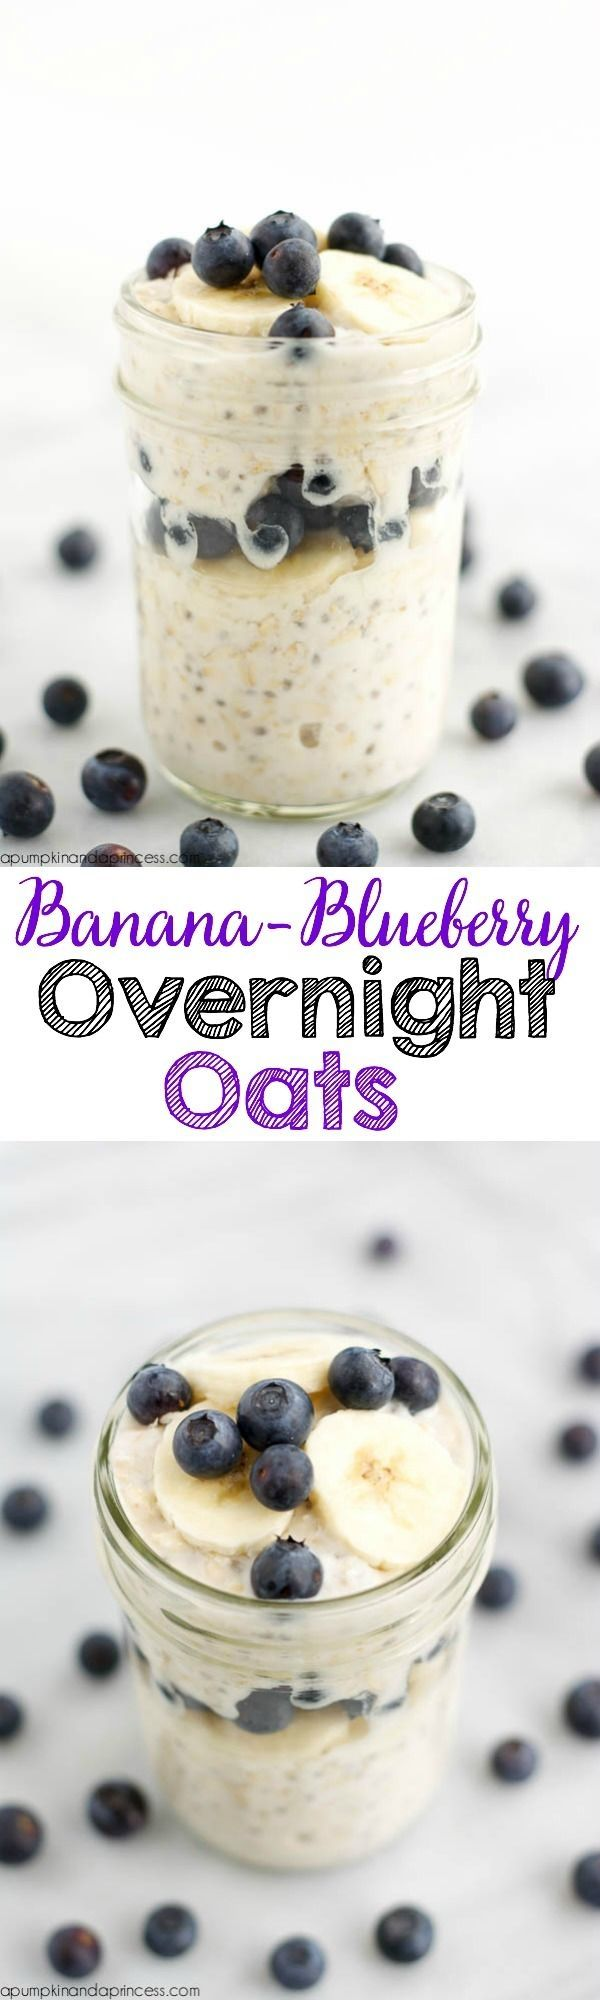 33 Overnight Oats Recipes for the Perfect Lazy Girl Breakfast ...